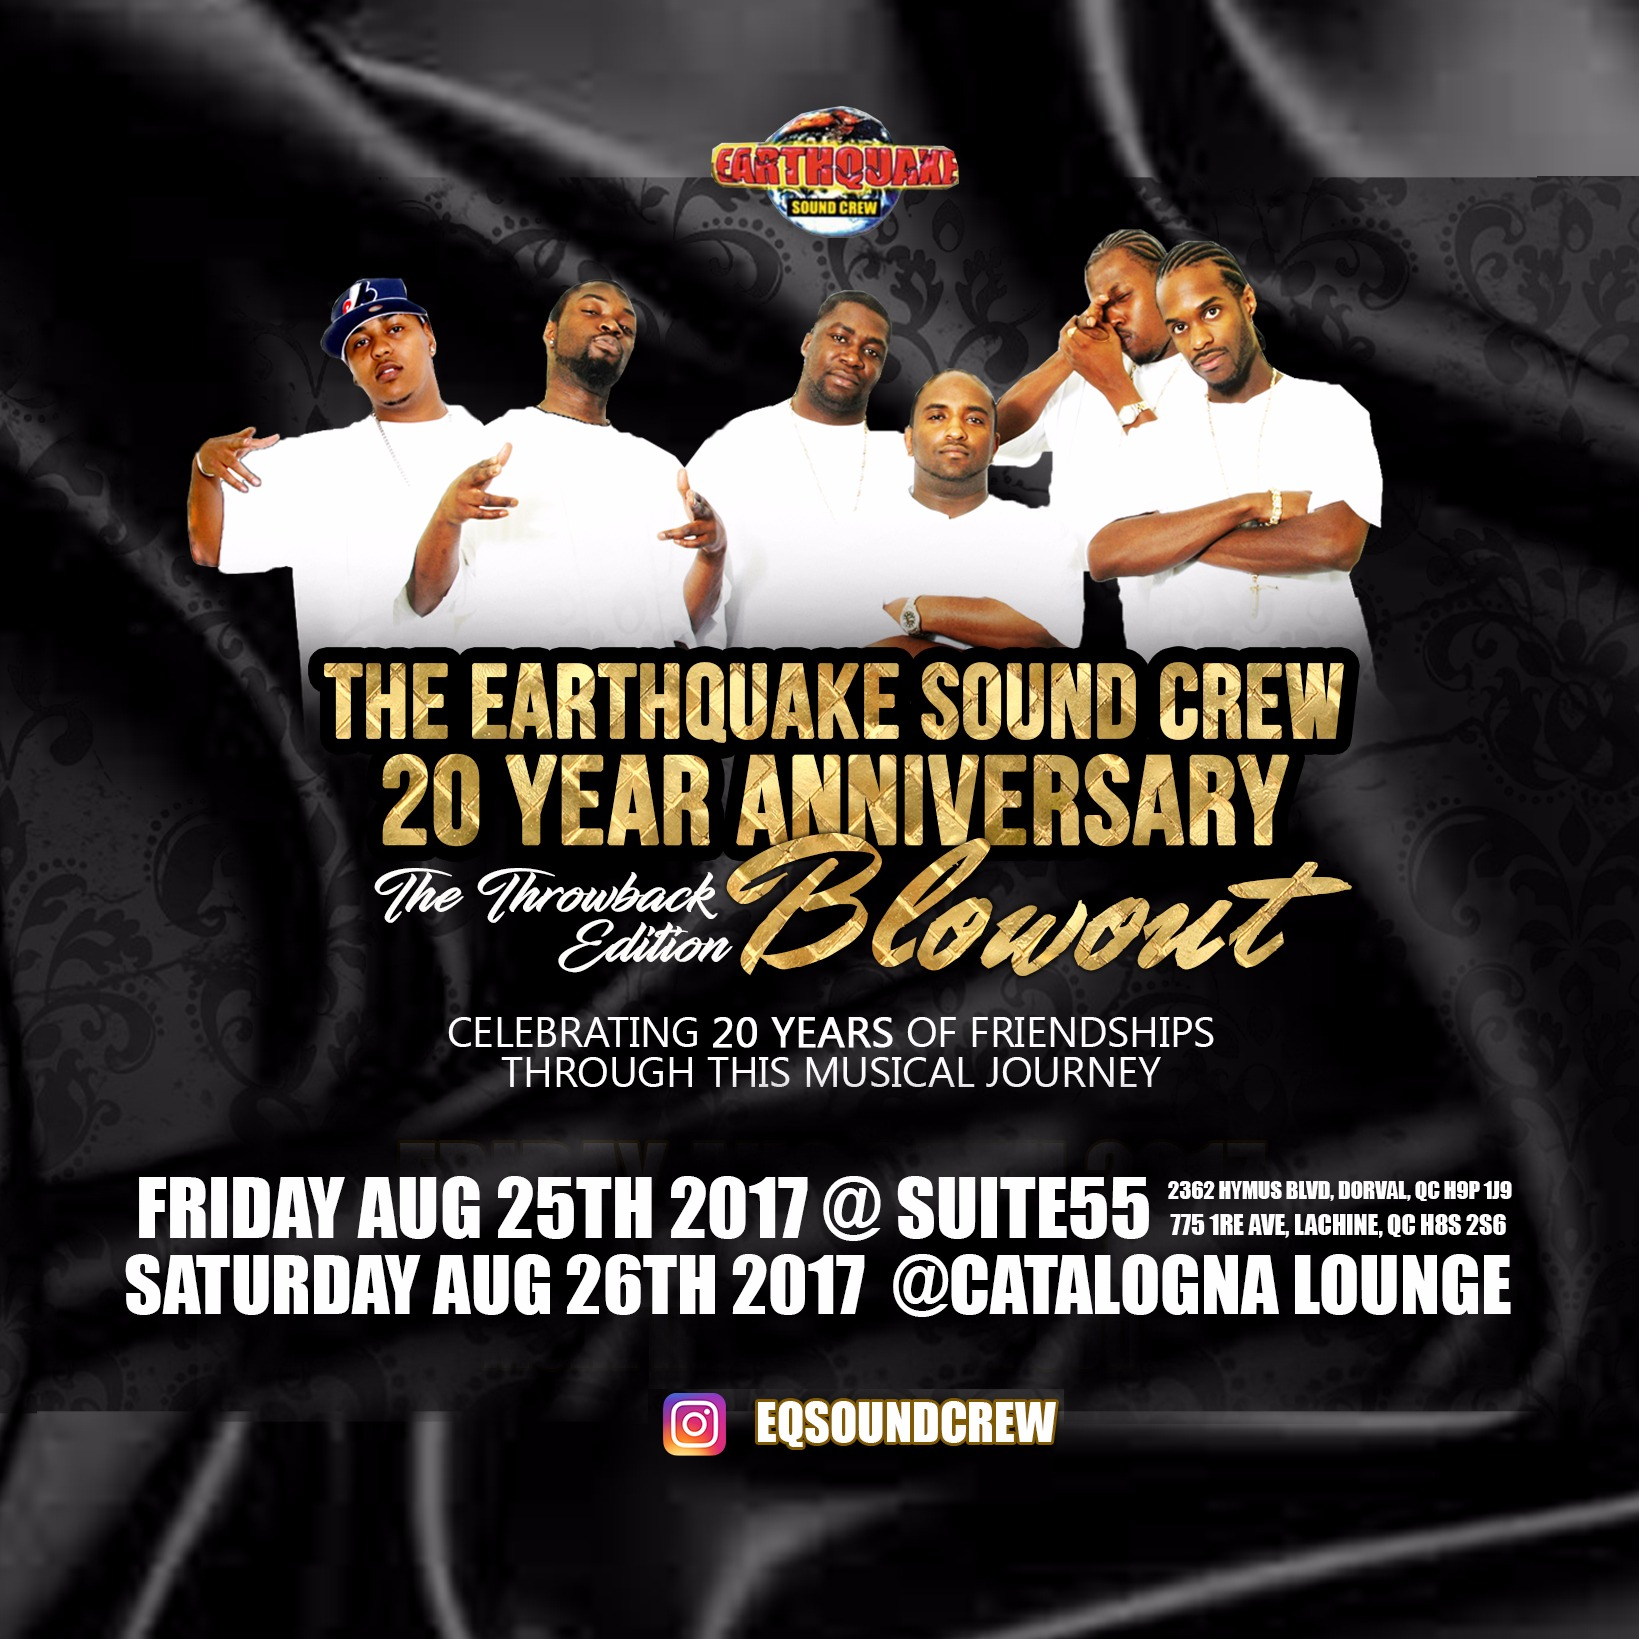 THE EARTHQUAKE SOUNDCREW 20TH ANNIVERSARY